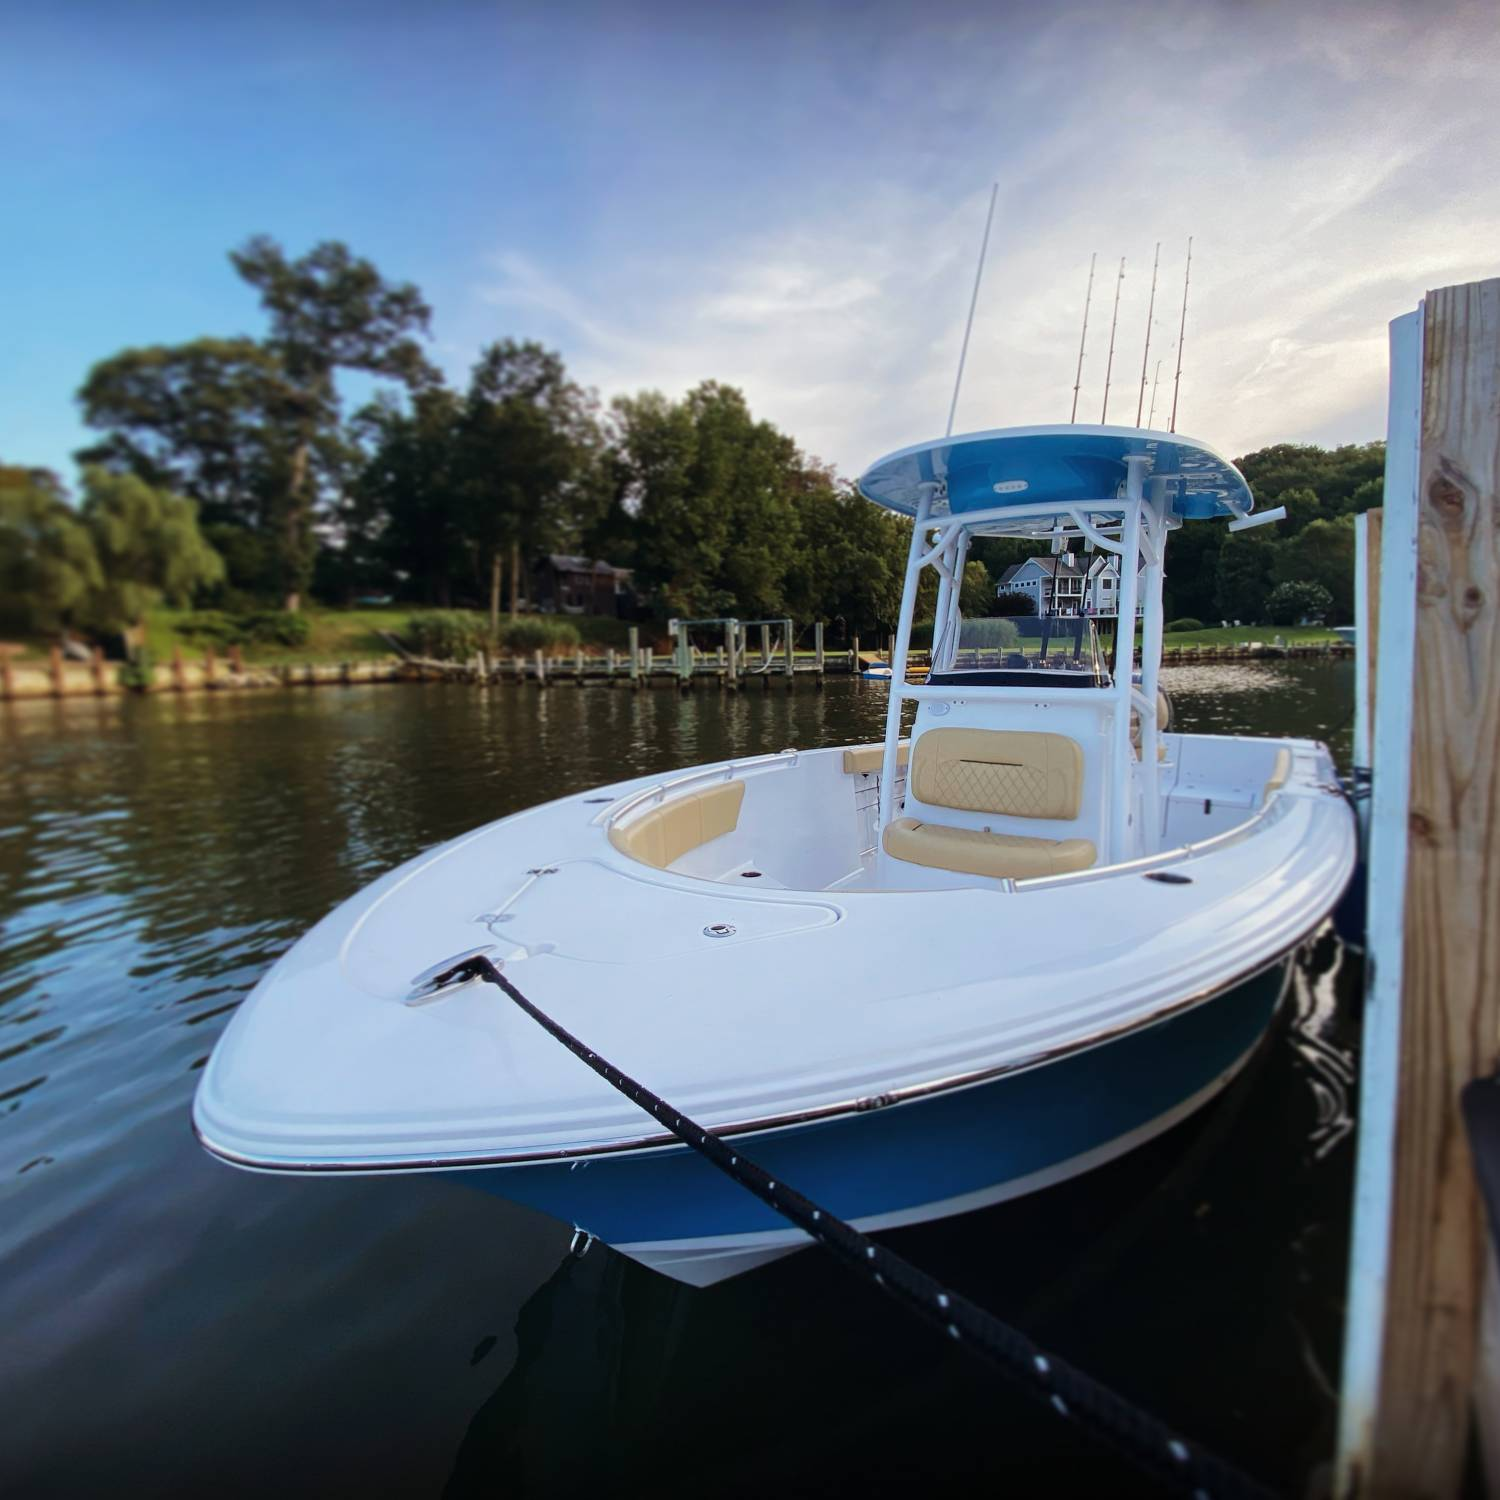 Title: Sunset over Annapolis - On board their Sportsman Heritage 231 Center Console - Location: Annapolis Maryland. Participating in the Photo Contest #SportsmanSeptember2021